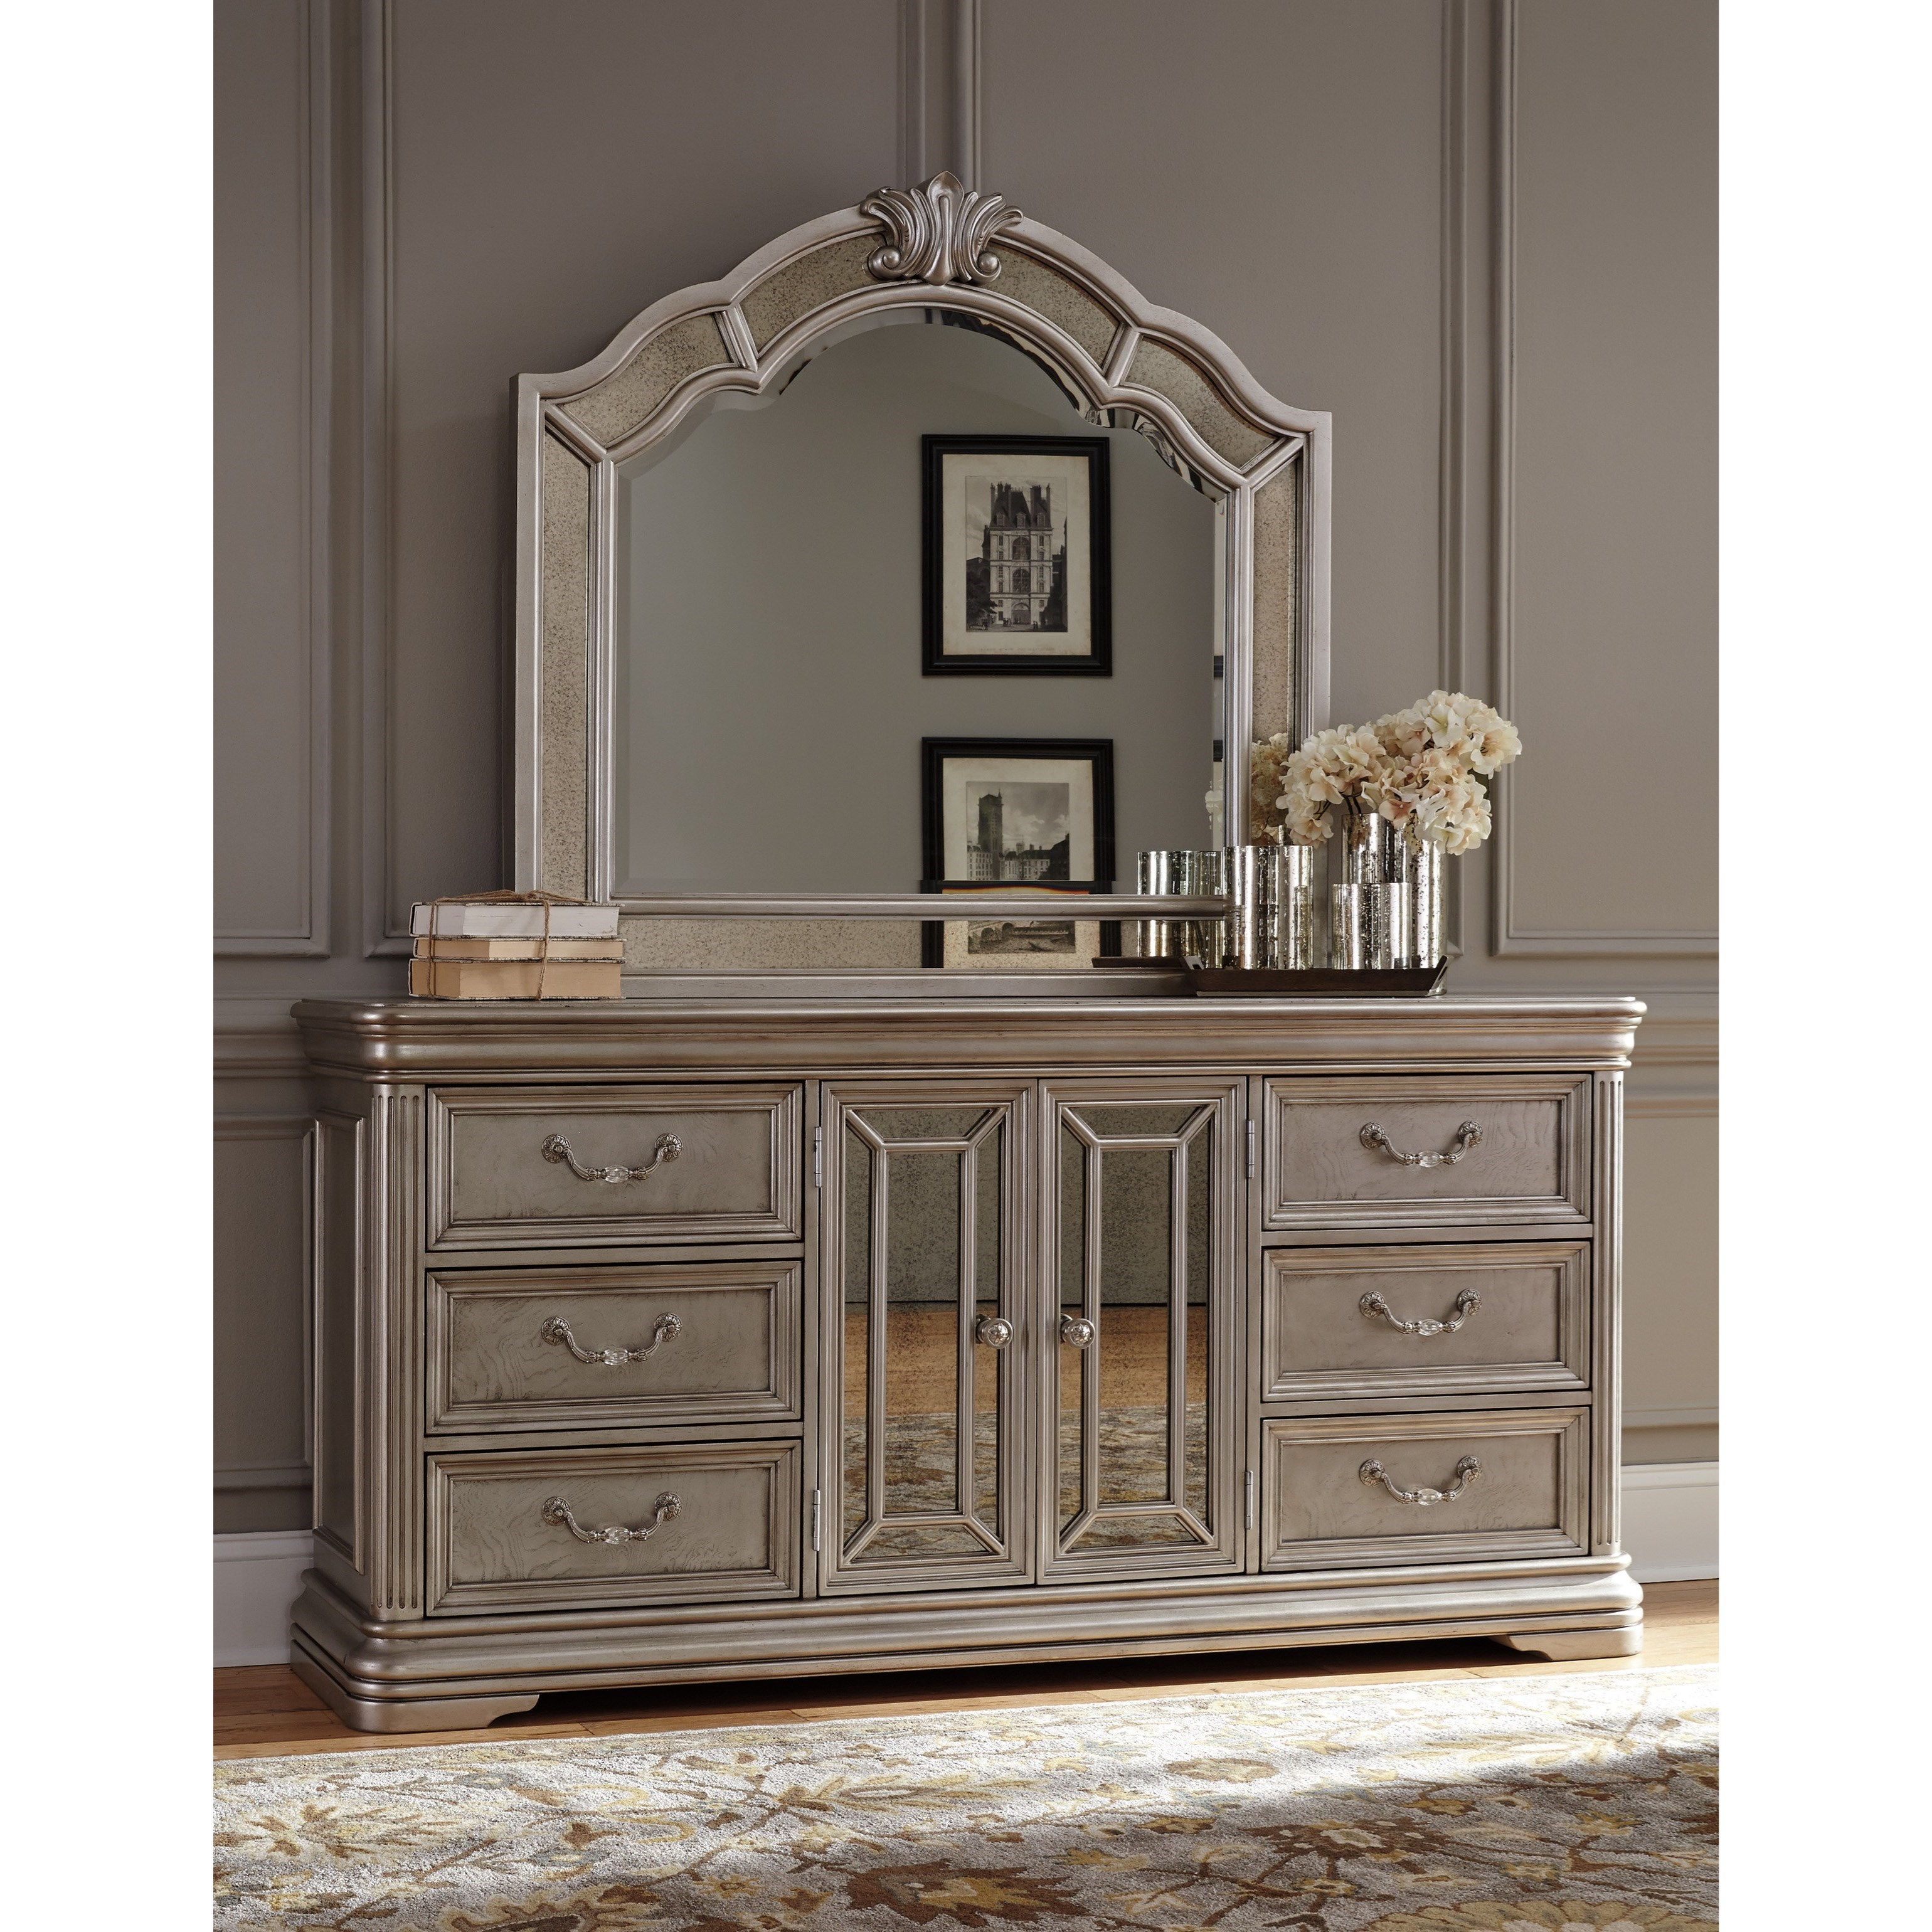 Signature Design by Ashley Birlanny Bedroom Mirror with Mirror Panels Becke